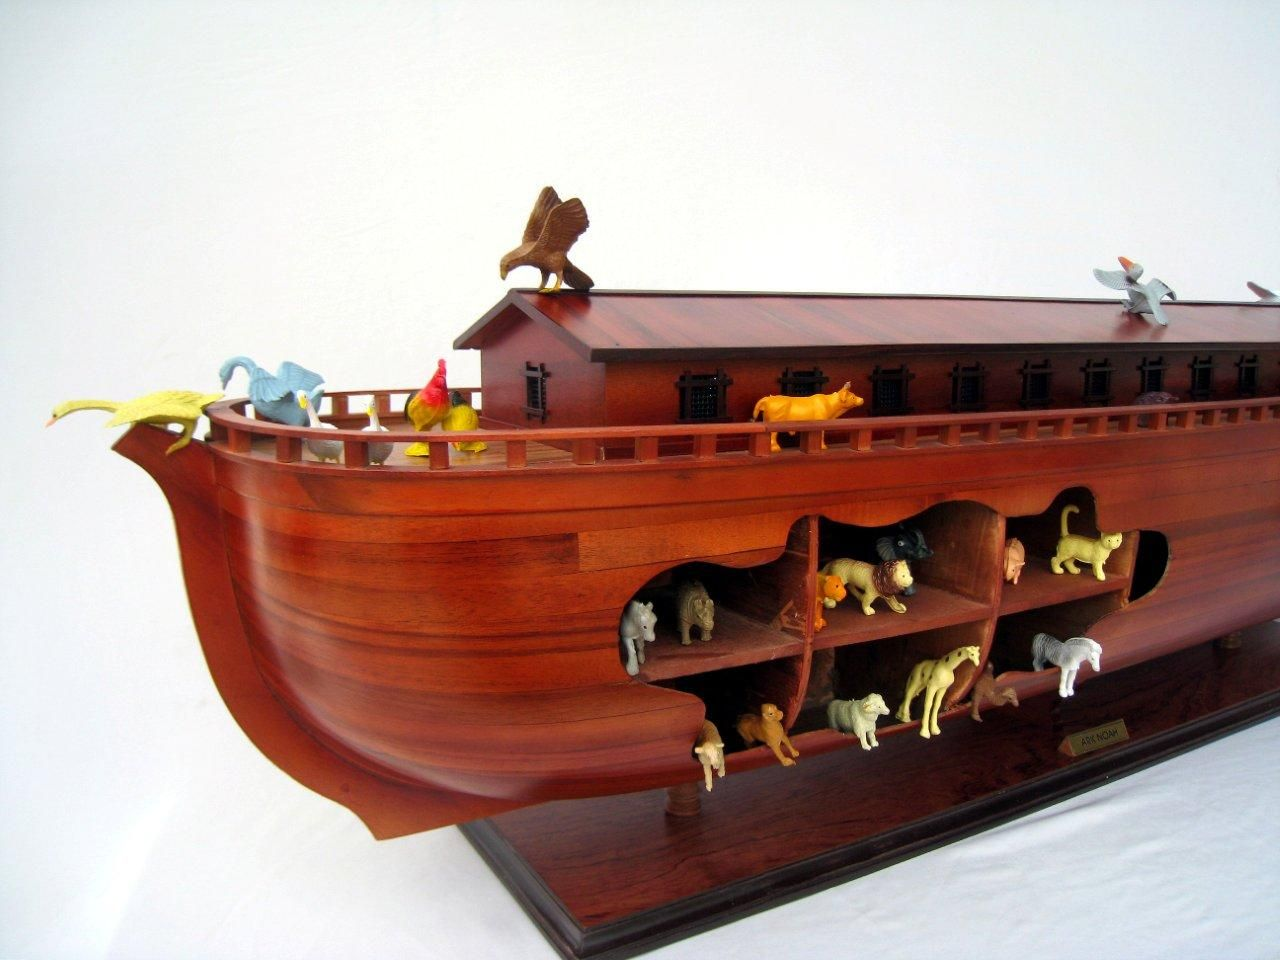 2043-12574-Noahs-Ark-Model-Boat